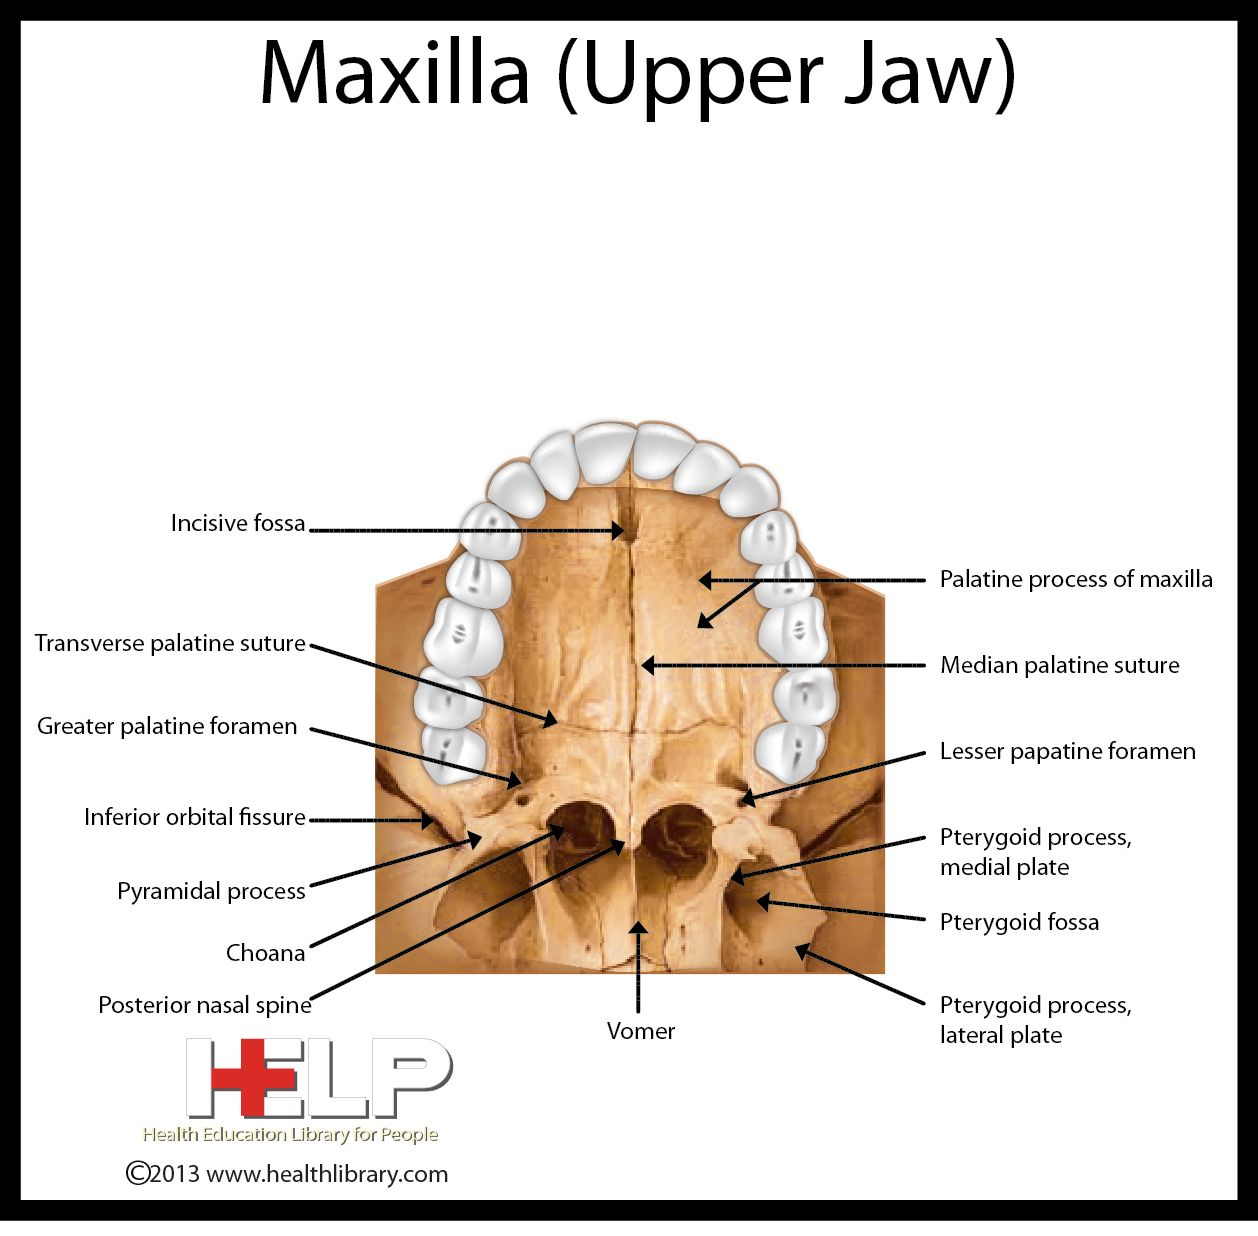 Maxilla (Upper Jaw) | Dental | Pinterest | Dental, Anatomy and ...